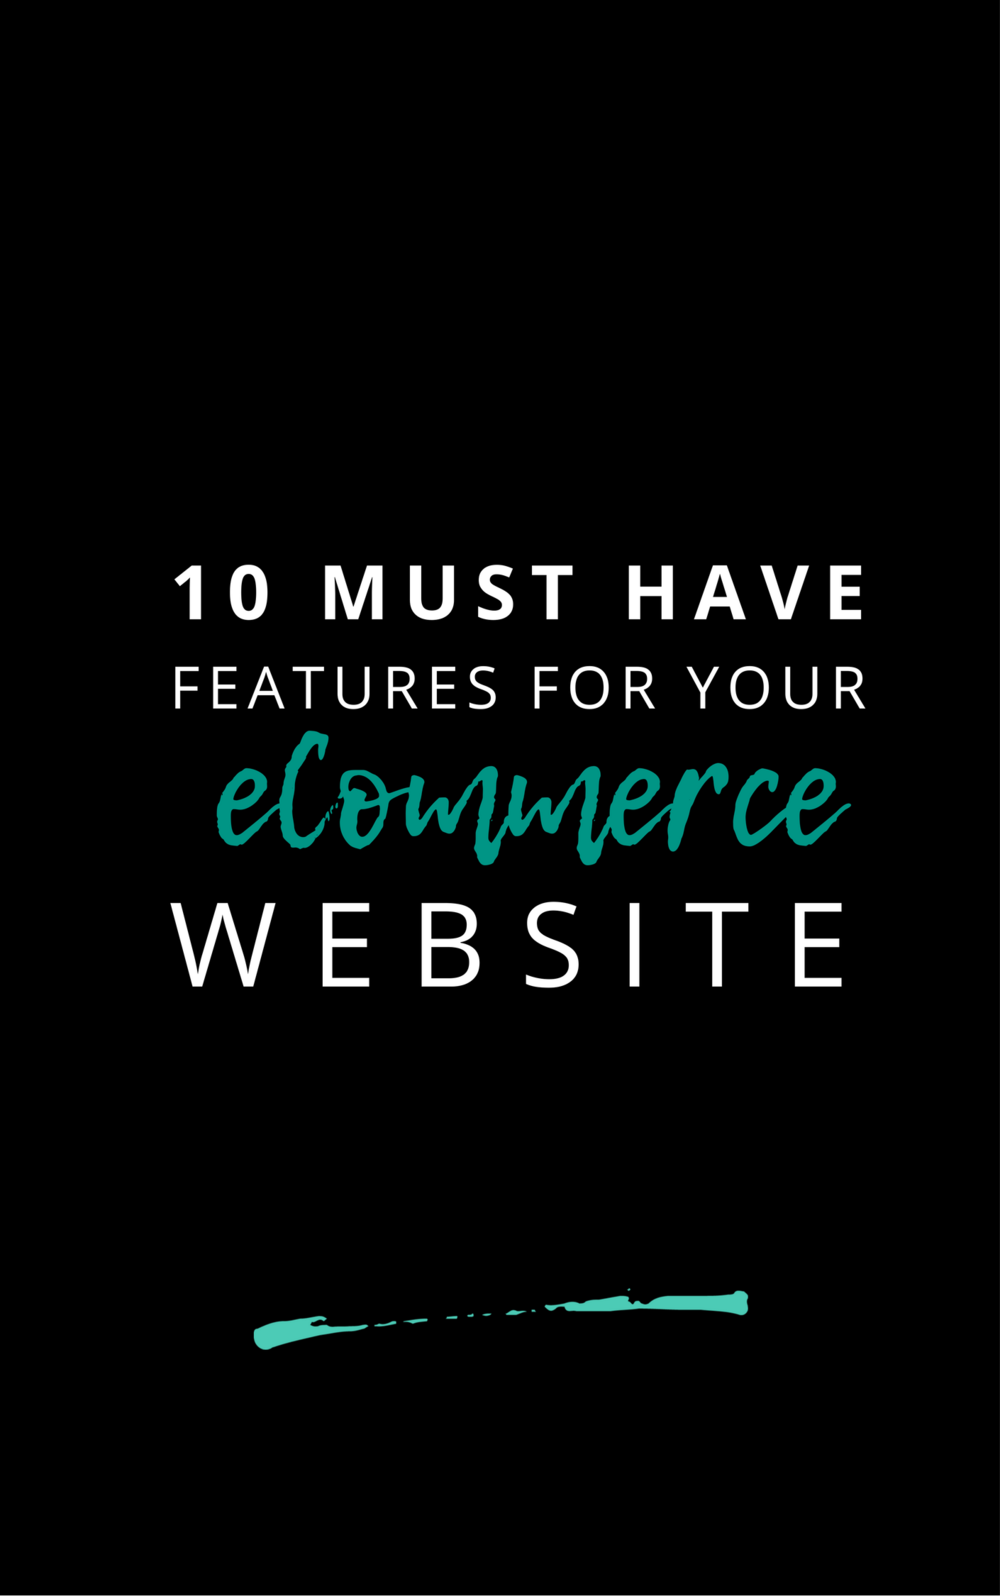 10 Must Have Features for Your eCommerce Store